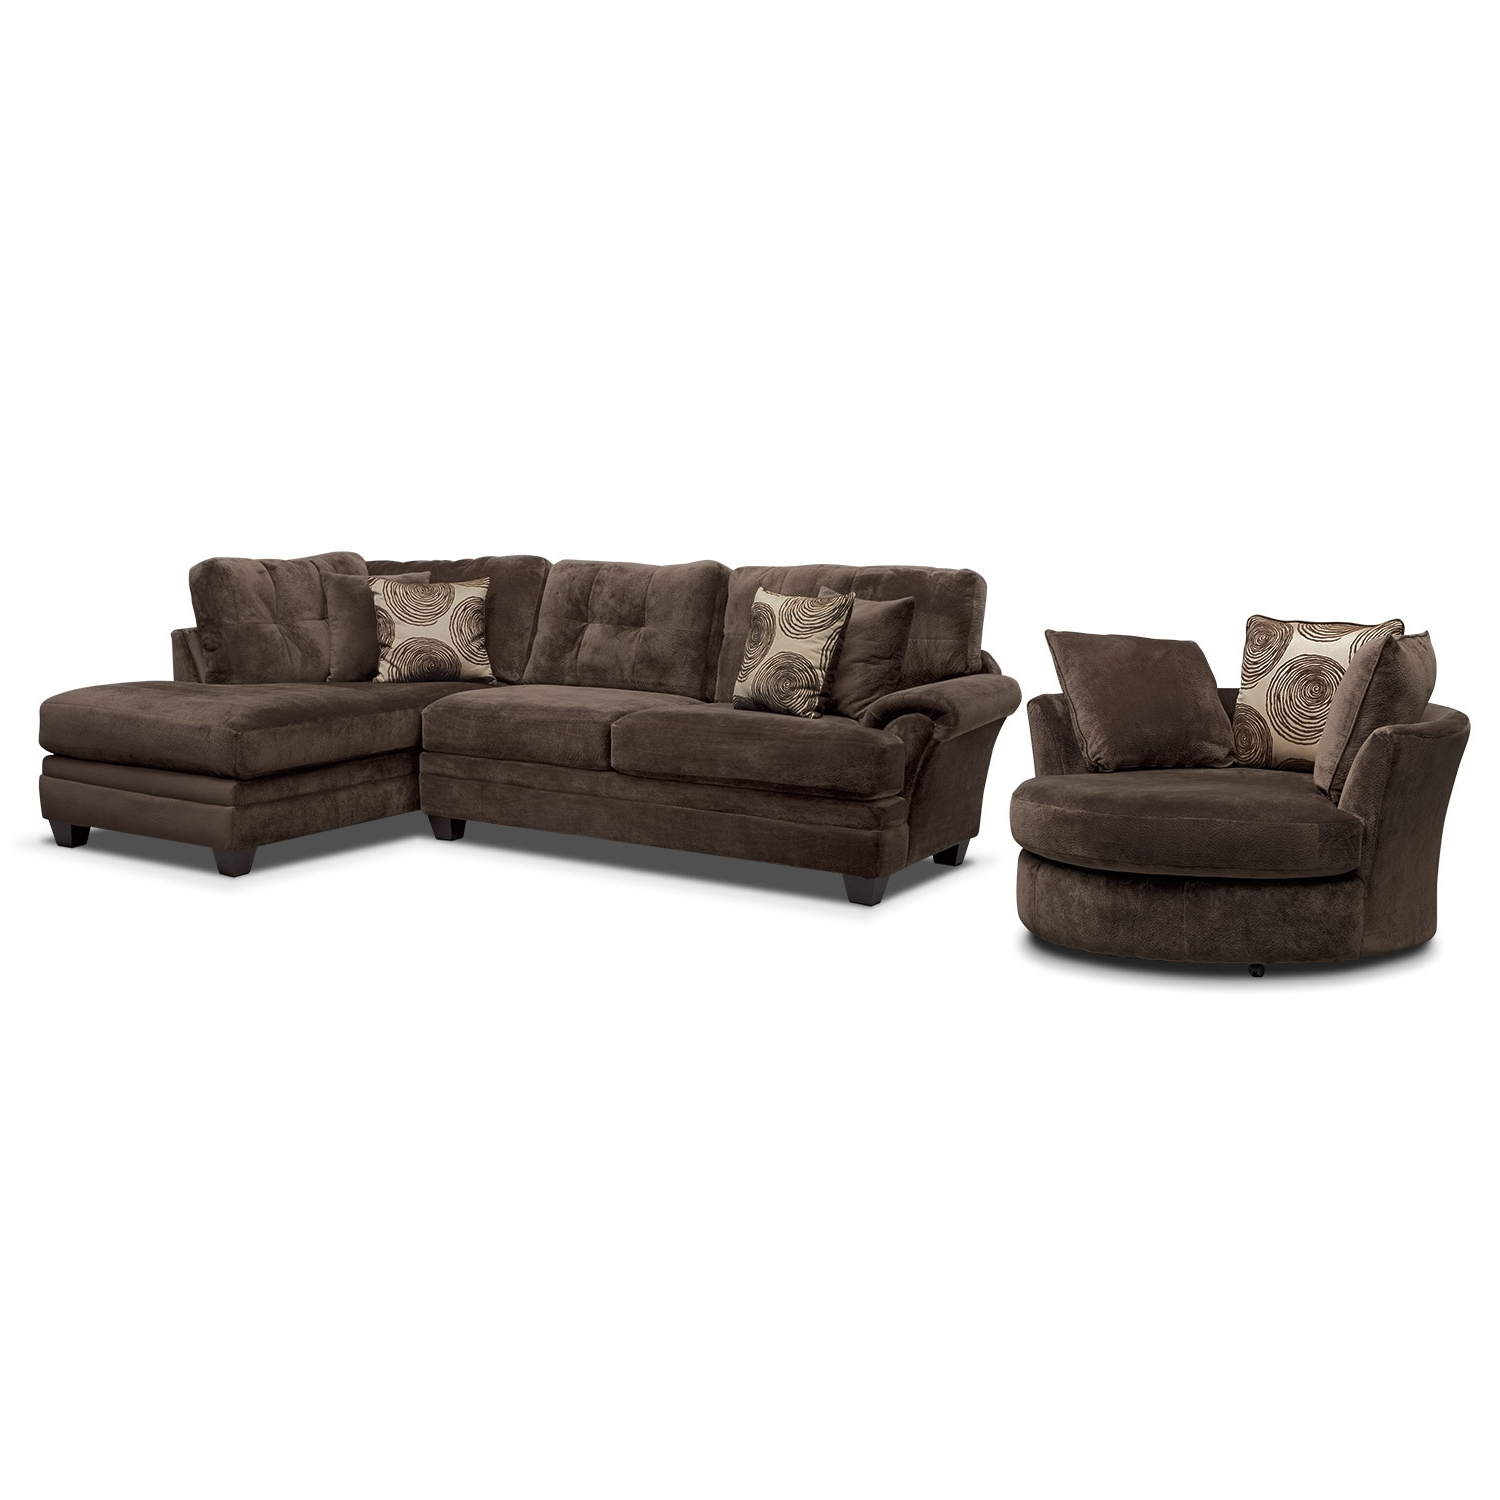 Cordelle 2 Piece Right Facing Chaise Sectional And Swivel Chair With Regard To Most Popular Sofas With Swivel Chair (View 15 of 15)